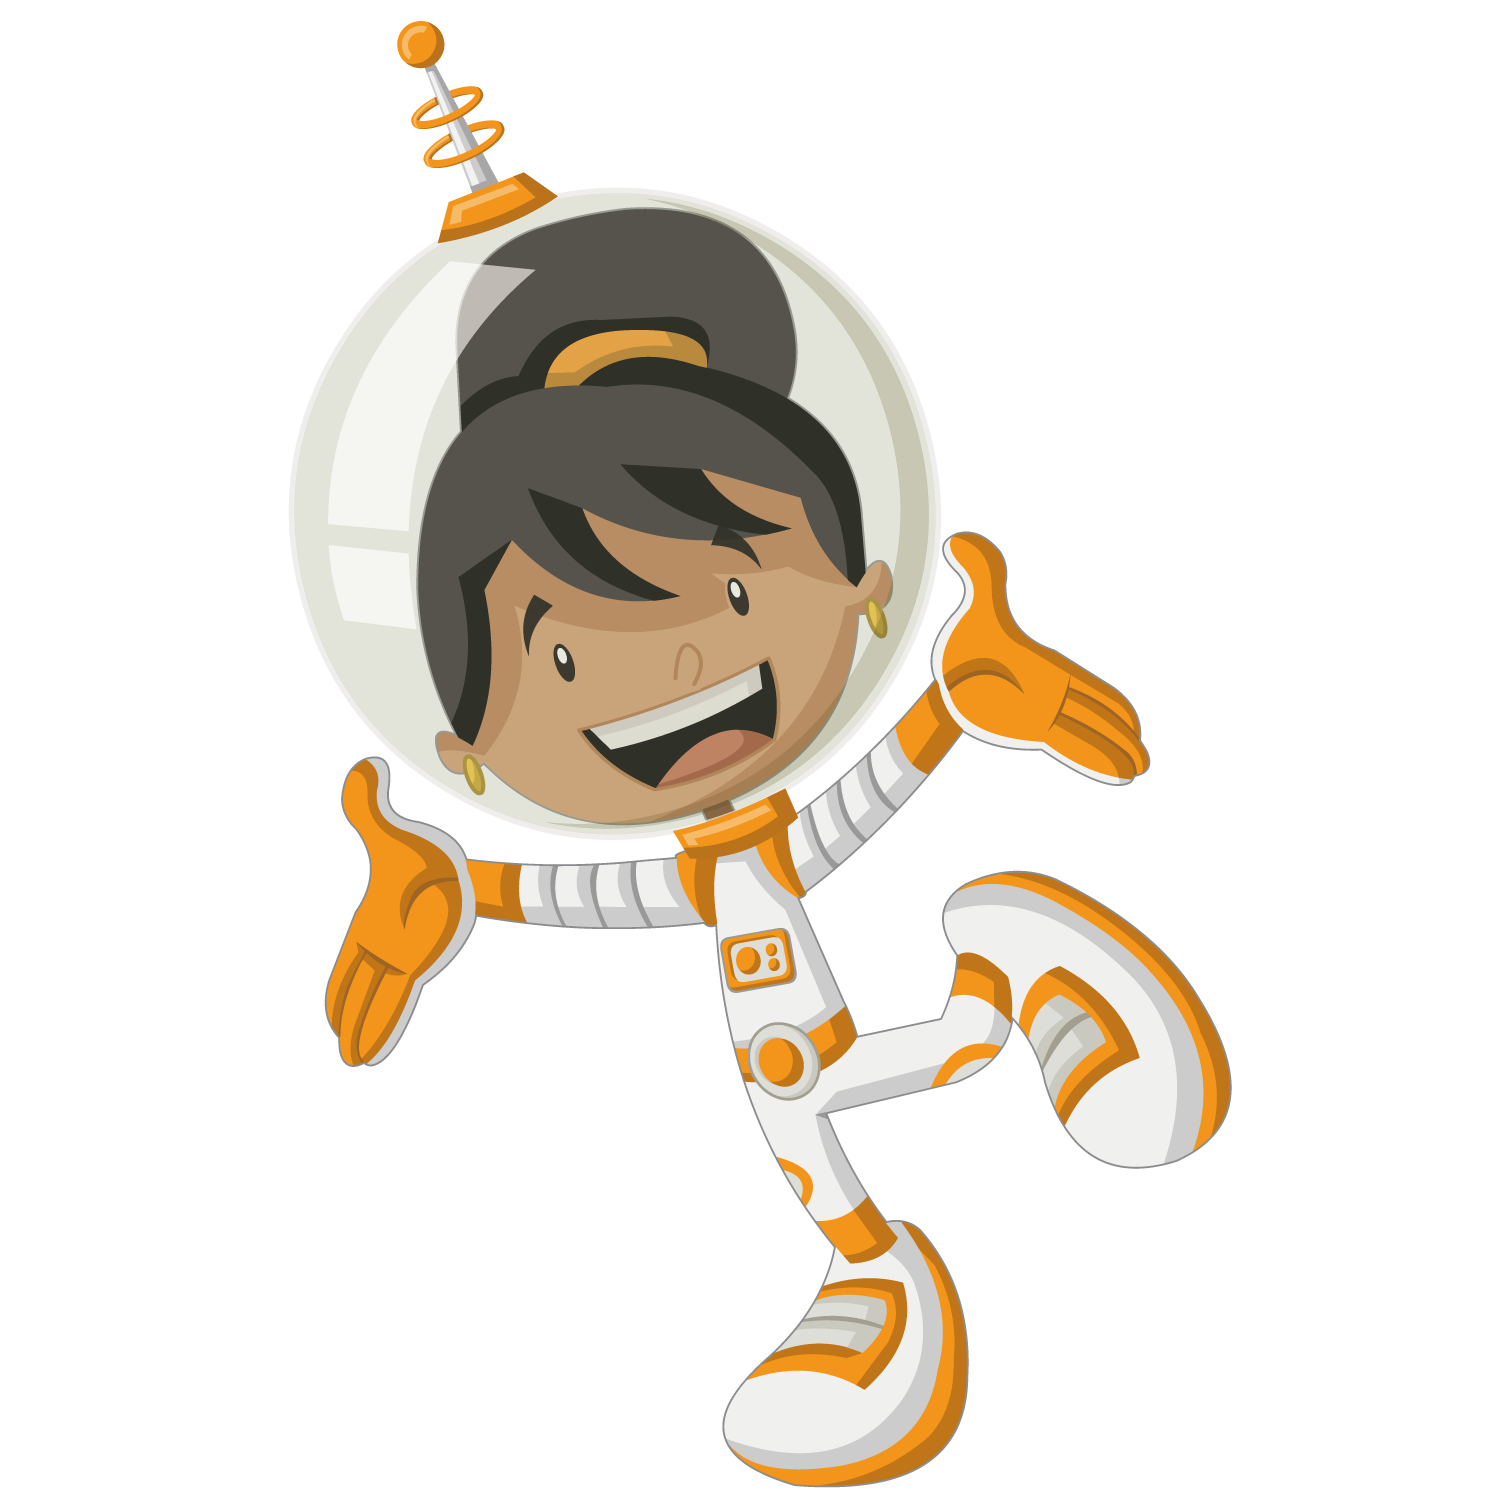 clipart library download Astronaut Woman Black Spaceflight